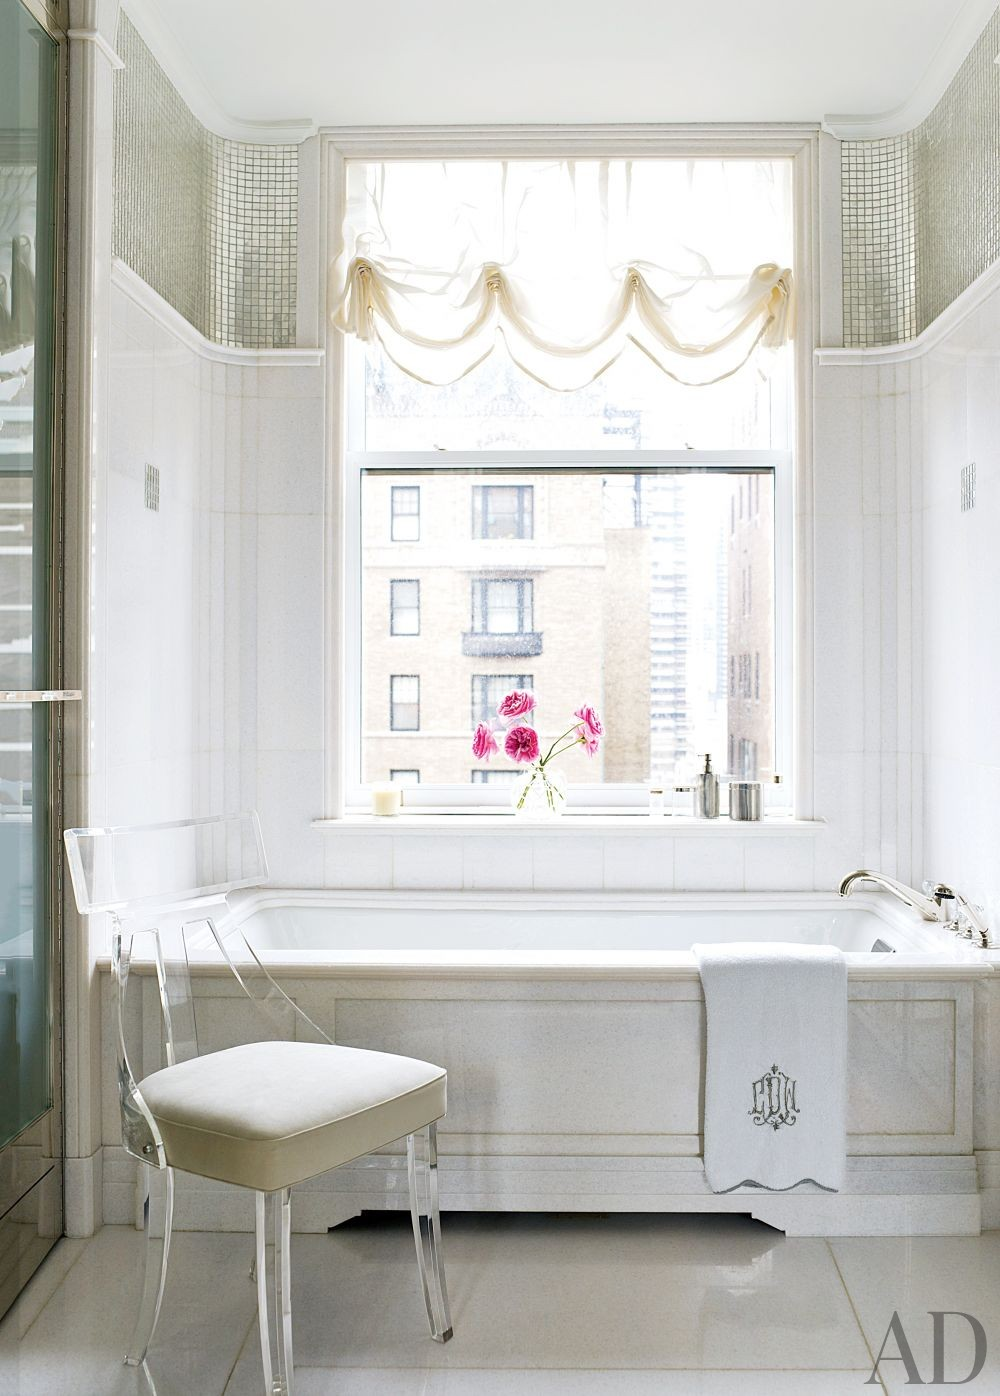 Traditional Bathroom by David Kleinberg Design Associates and David Kleinberg Design Associates in New York, New York